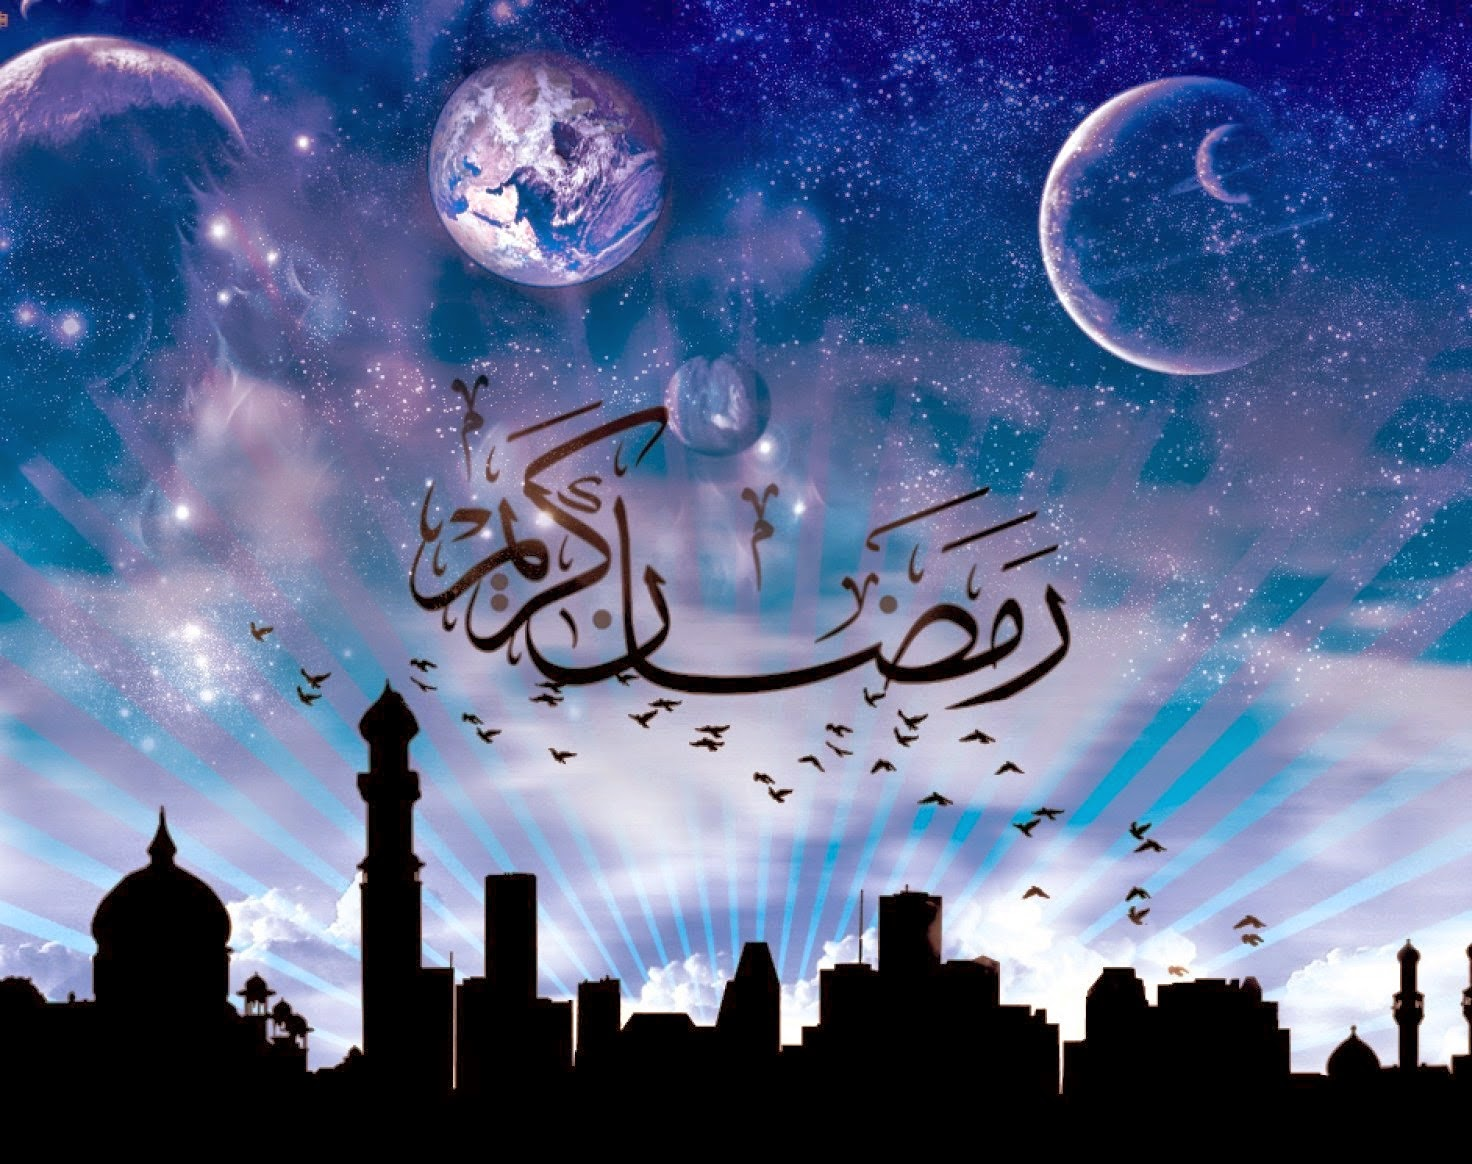 http://www.islam44.net/2014/04/ramadan-2014-wallpapers.html